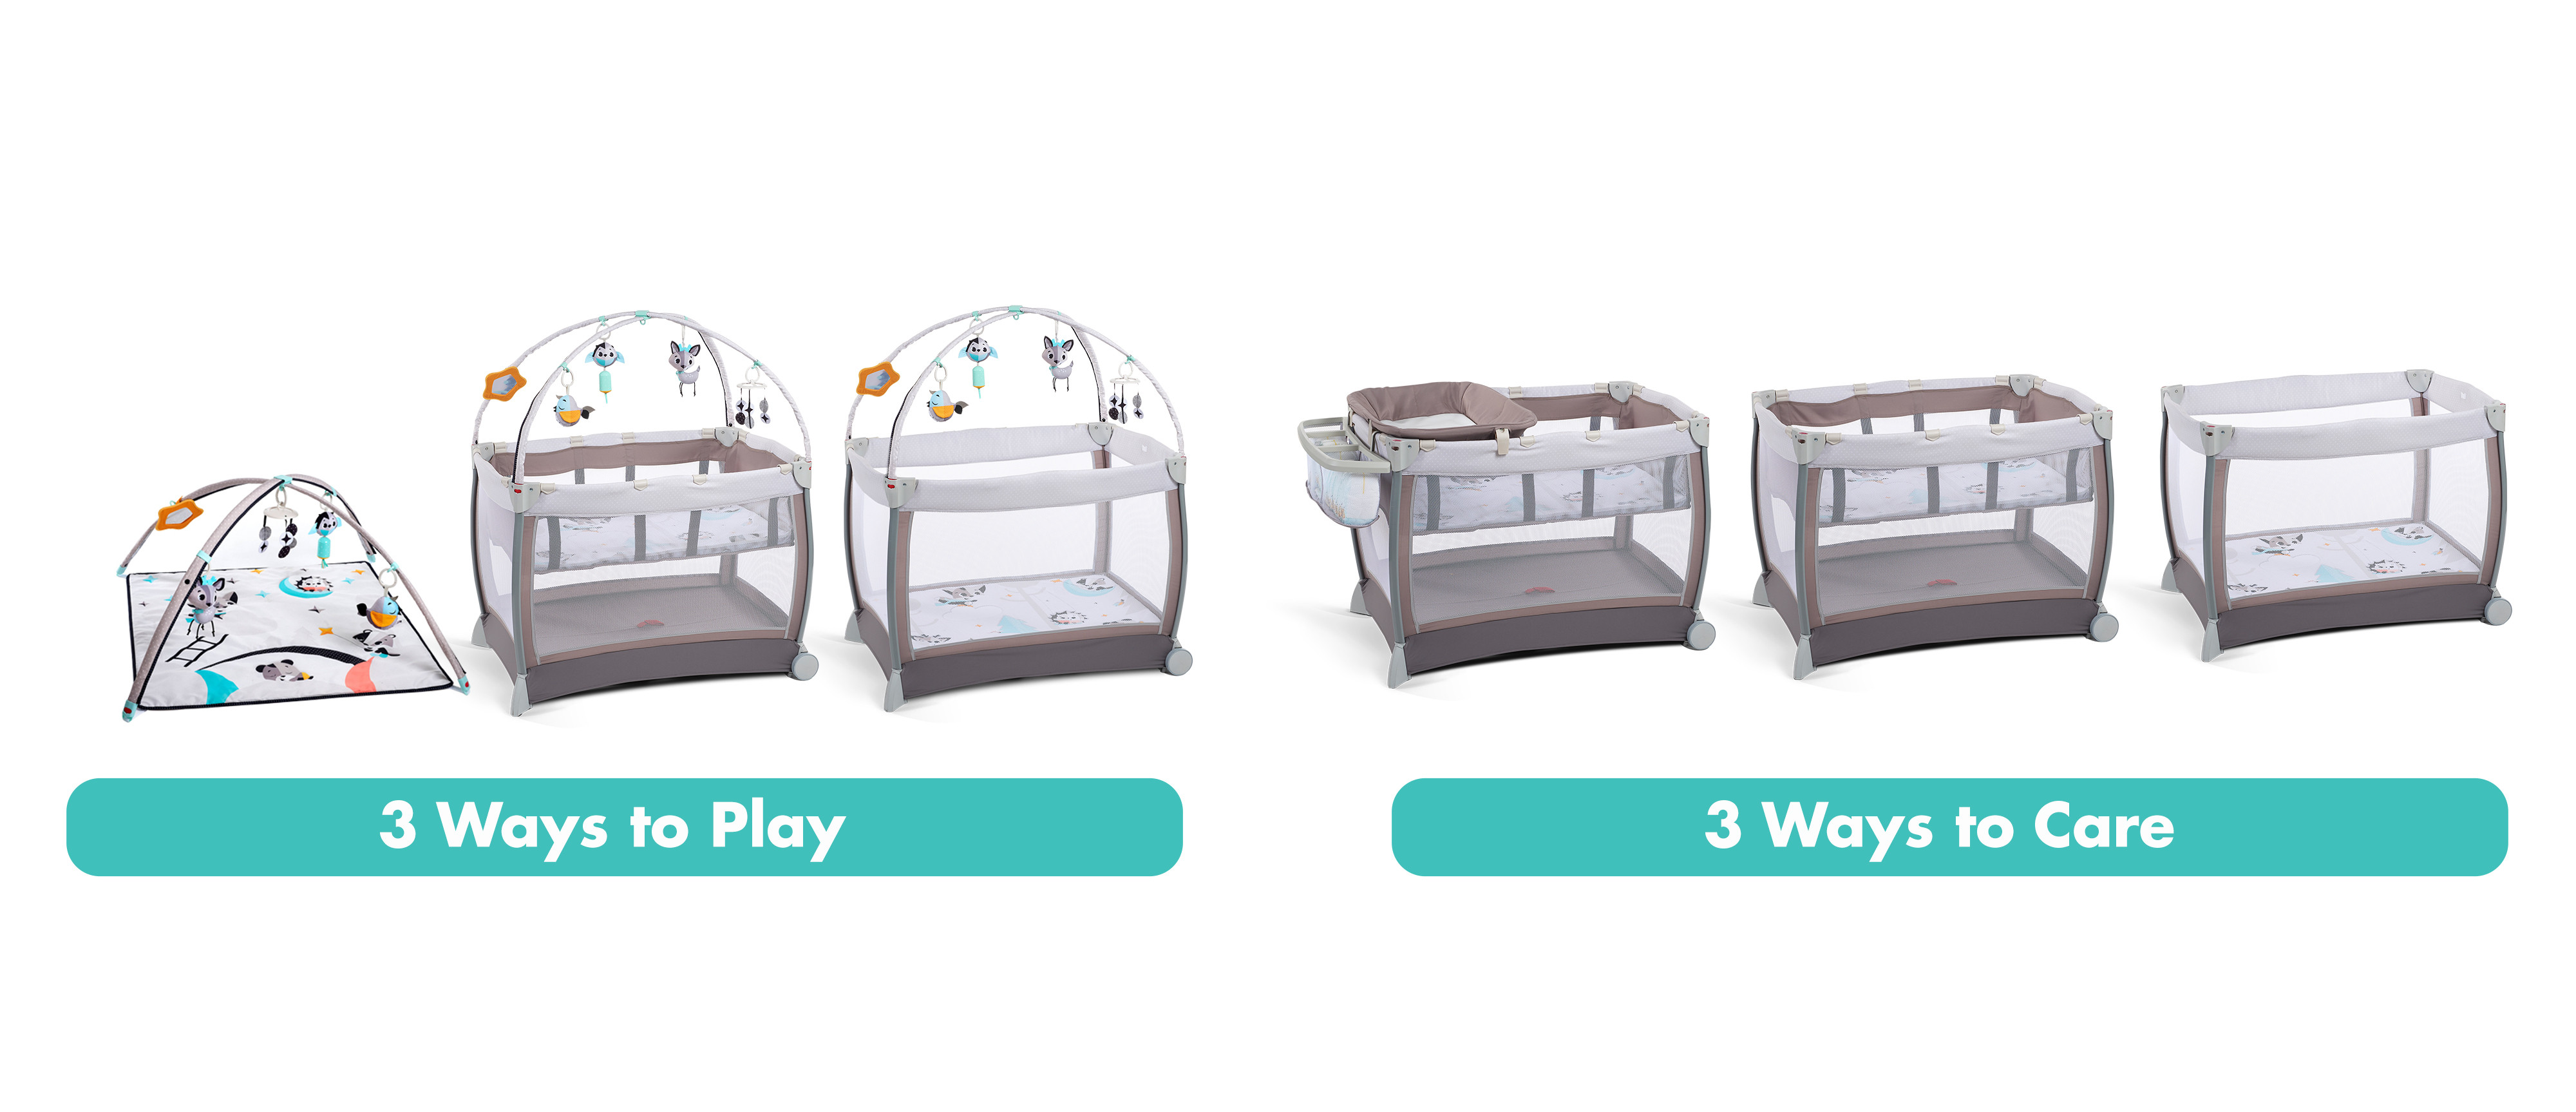 Six modes of use keep baby safe and cared for as she grows